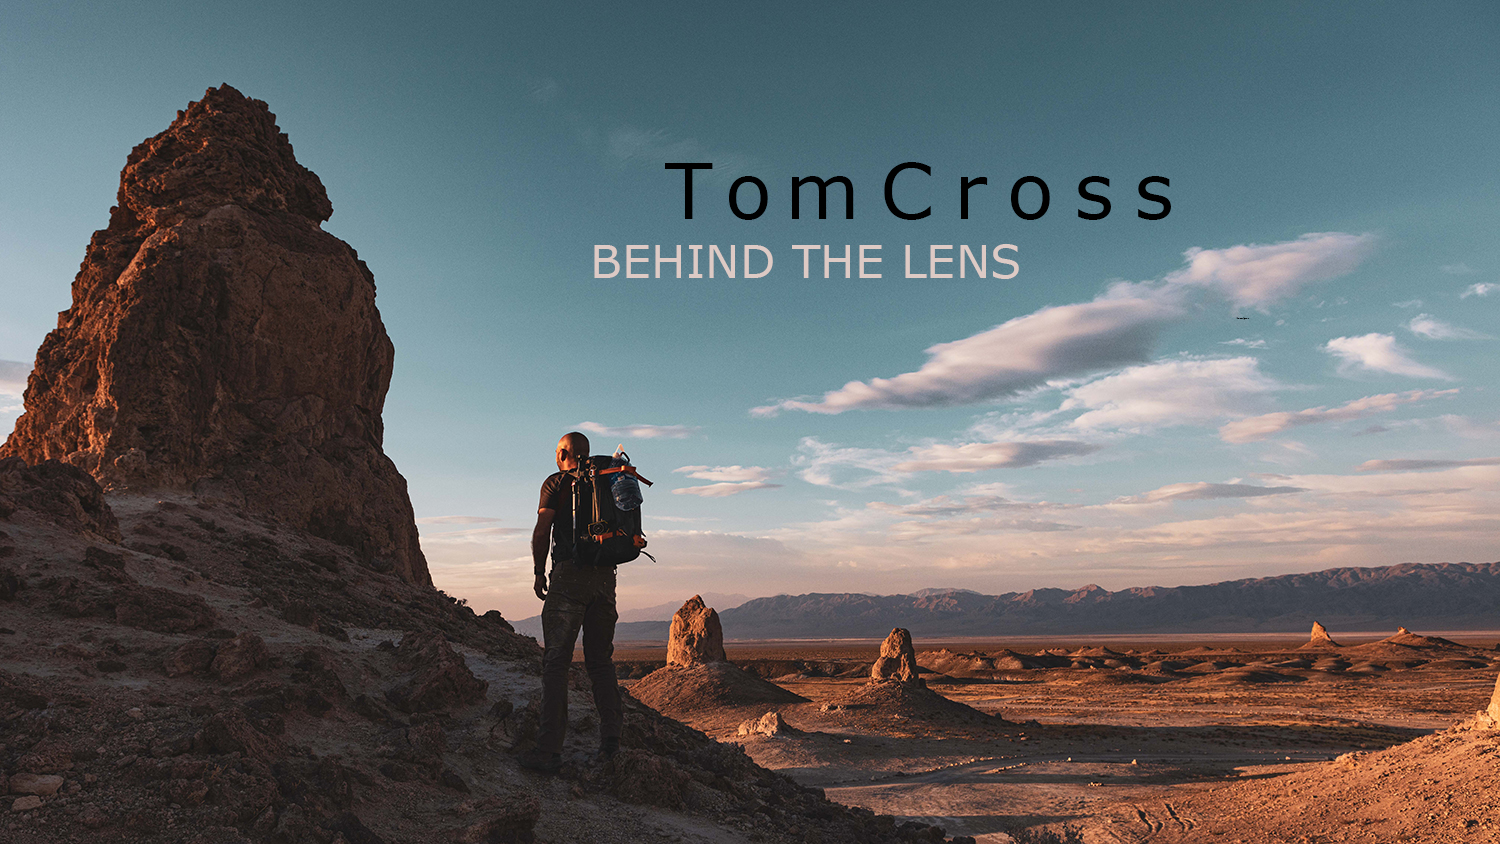 tom-cross-behind-the-lens-splash